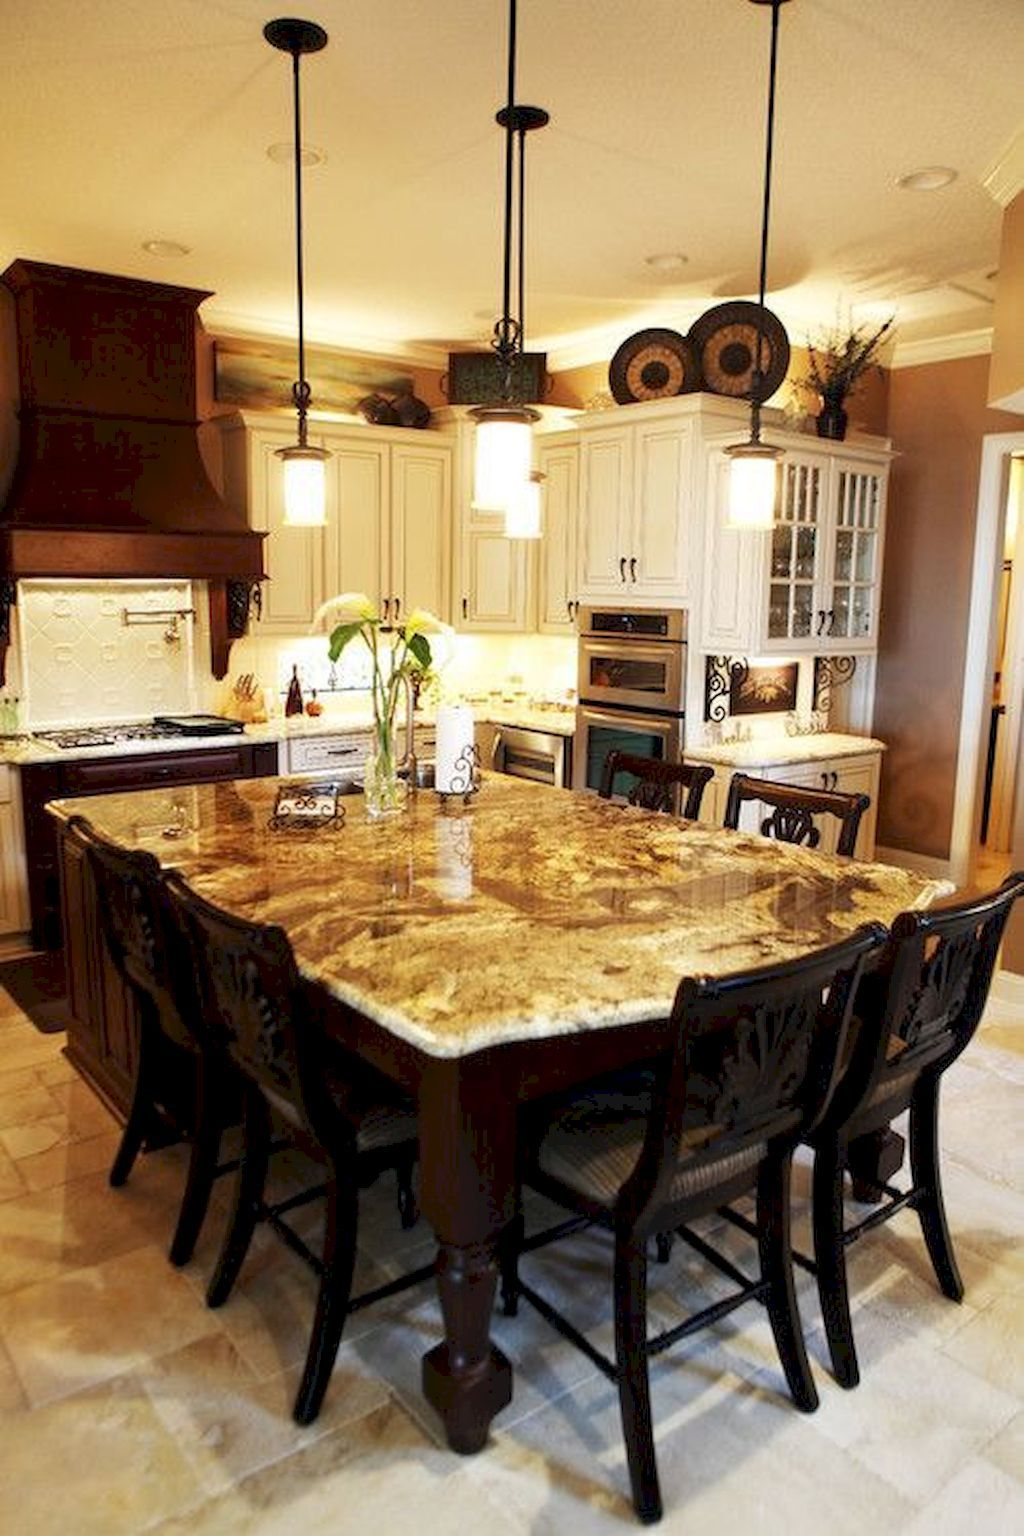 Oneonroom Com Nbspthis Website Is For Sale Nbsponeonroom Resources And Information Granite Dining Table Granite Kitchen Table Granite Table